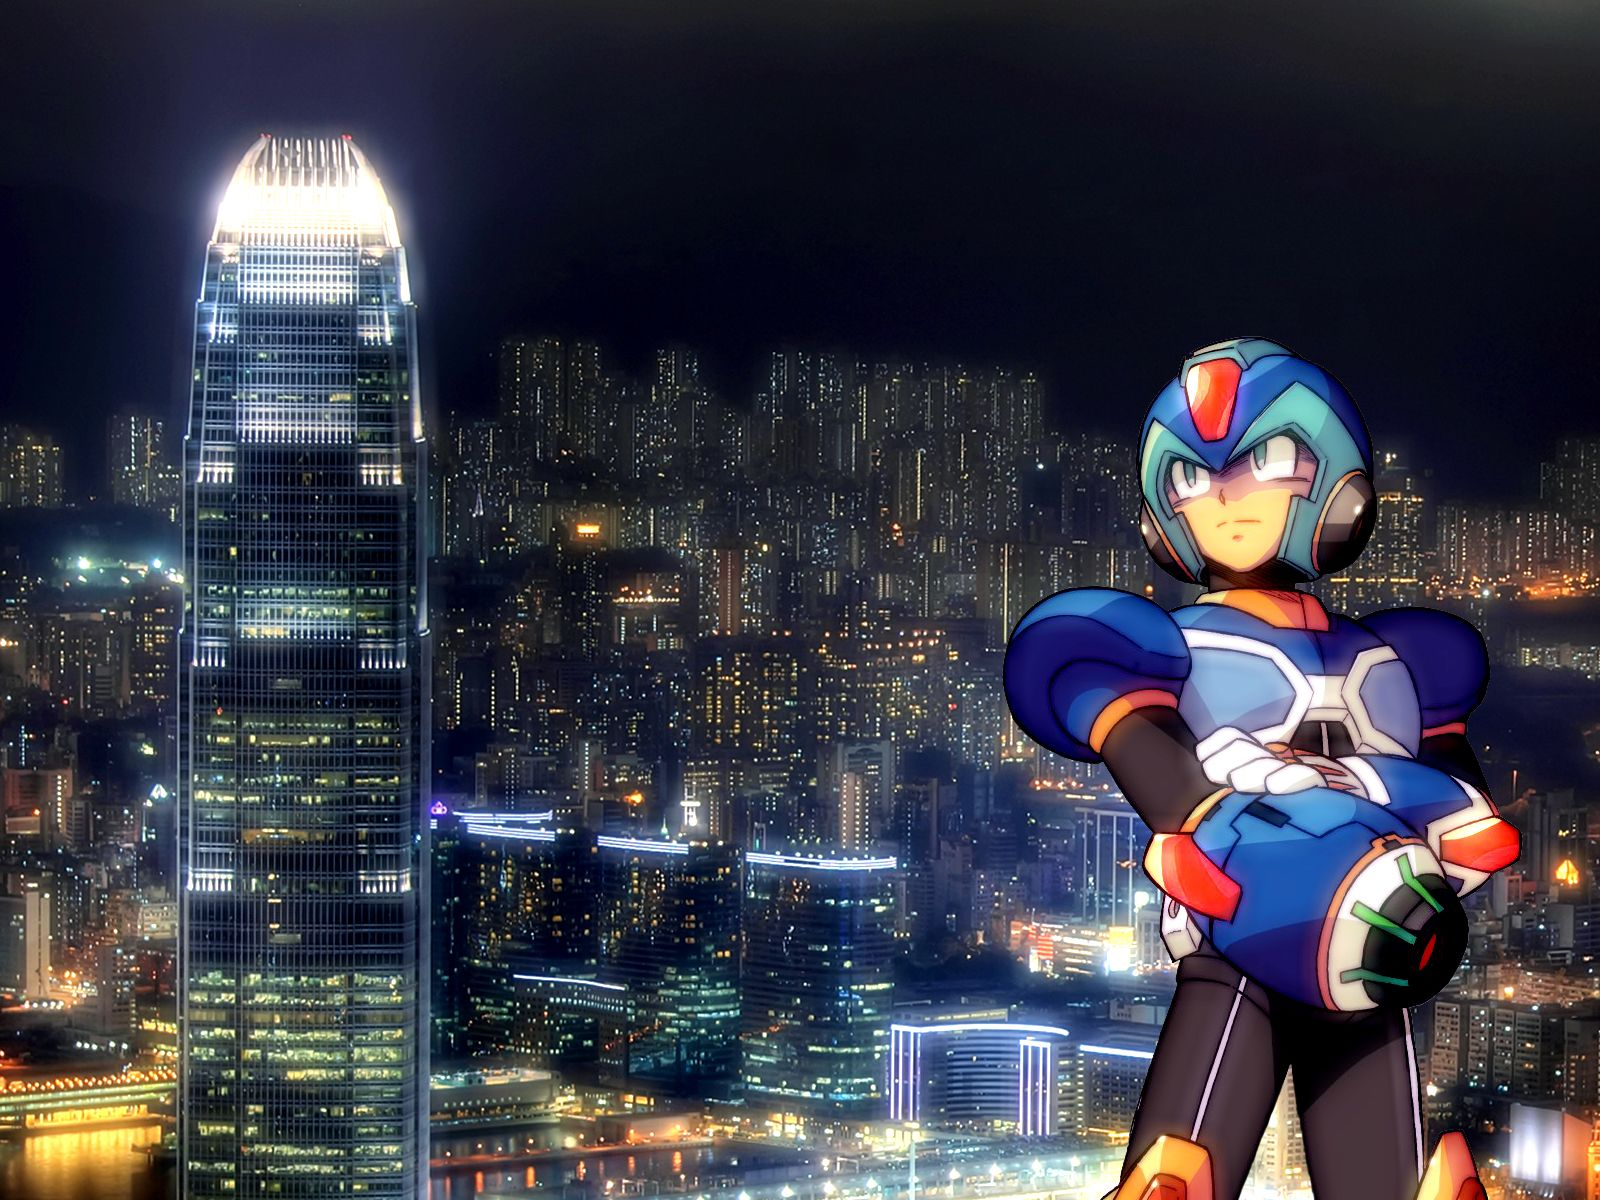 Free Download Megaman X HD Wallpaper For PC Computer